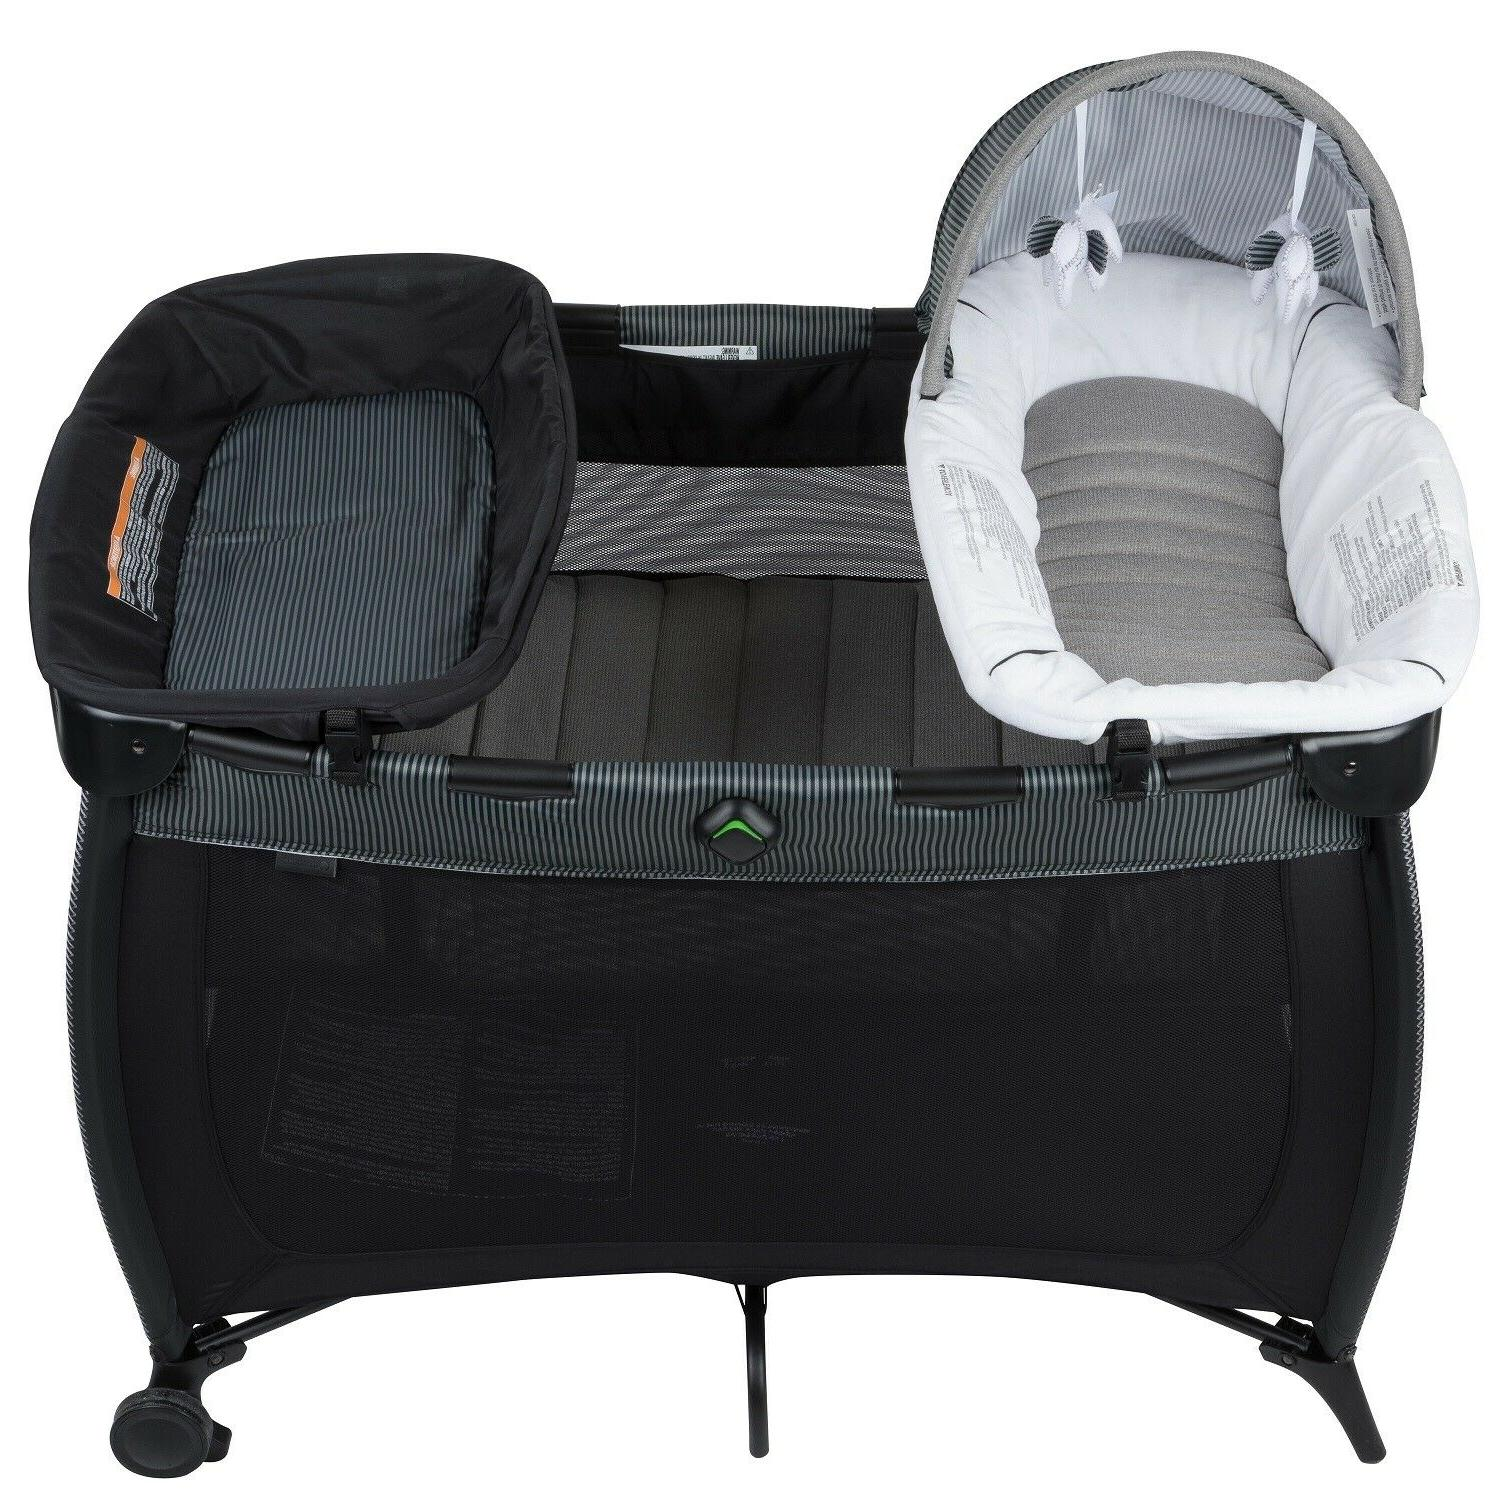 Stroller with Seat Infant Nursery Crib Baby System